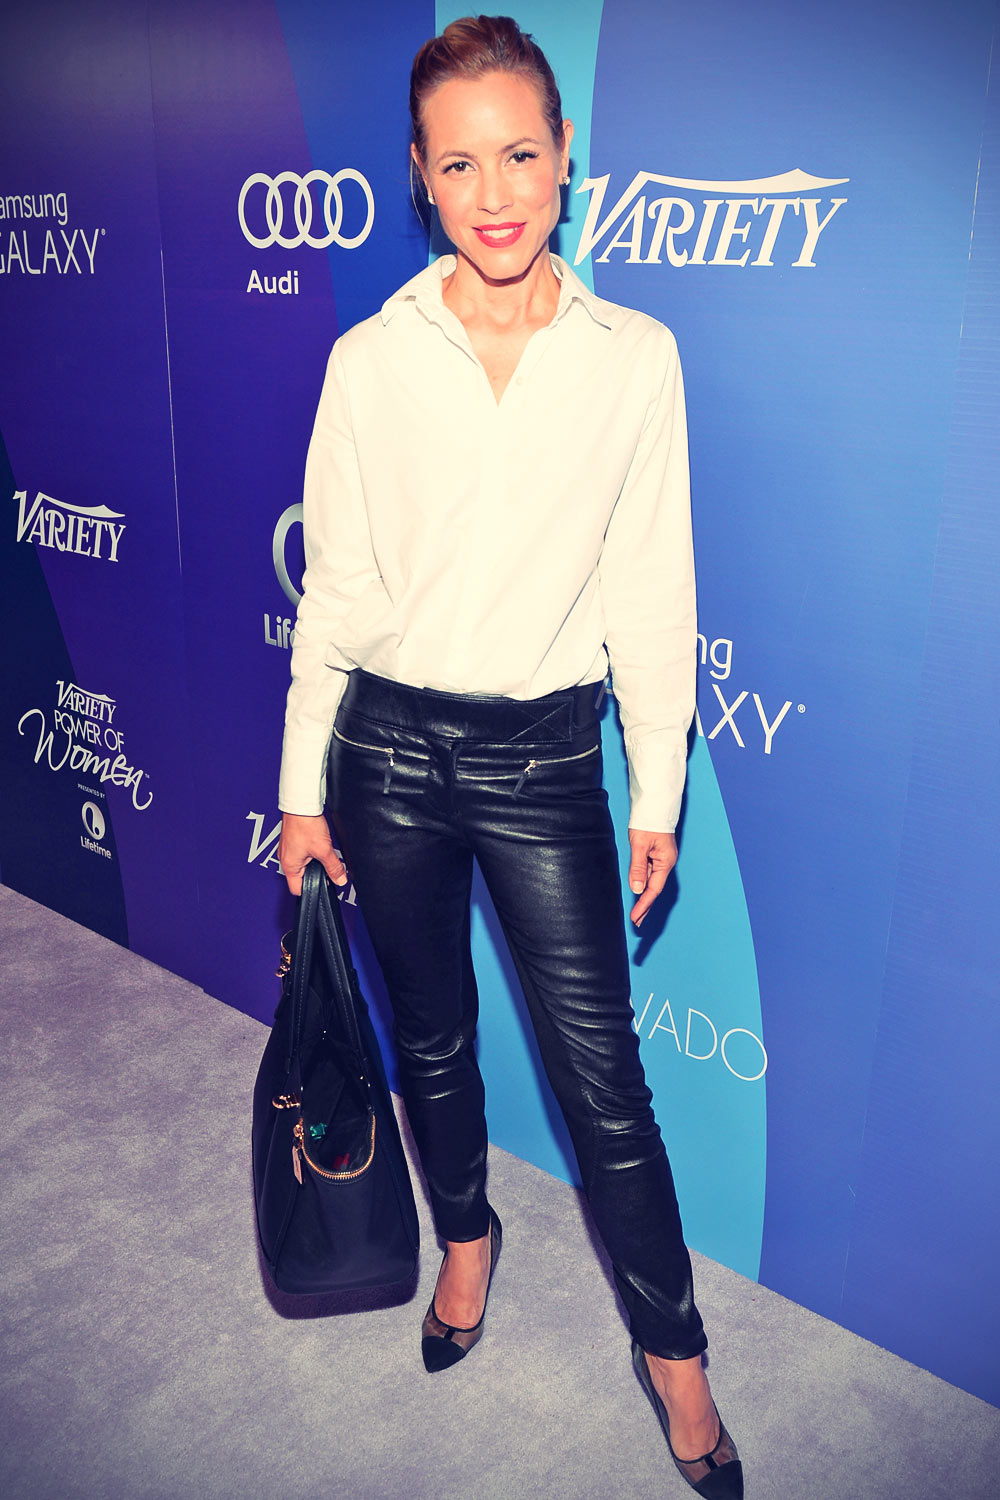 Maria Bello attends Variety's 5th Annual Power of Women Event